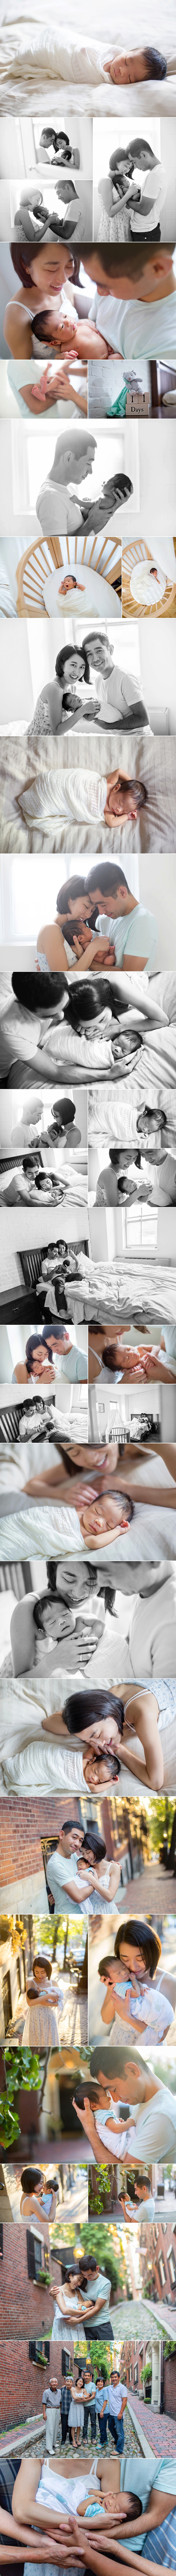 Boston newborn photographer Kate Lemmon photographs a brand new baby at home in Beacon Hill using natural light.